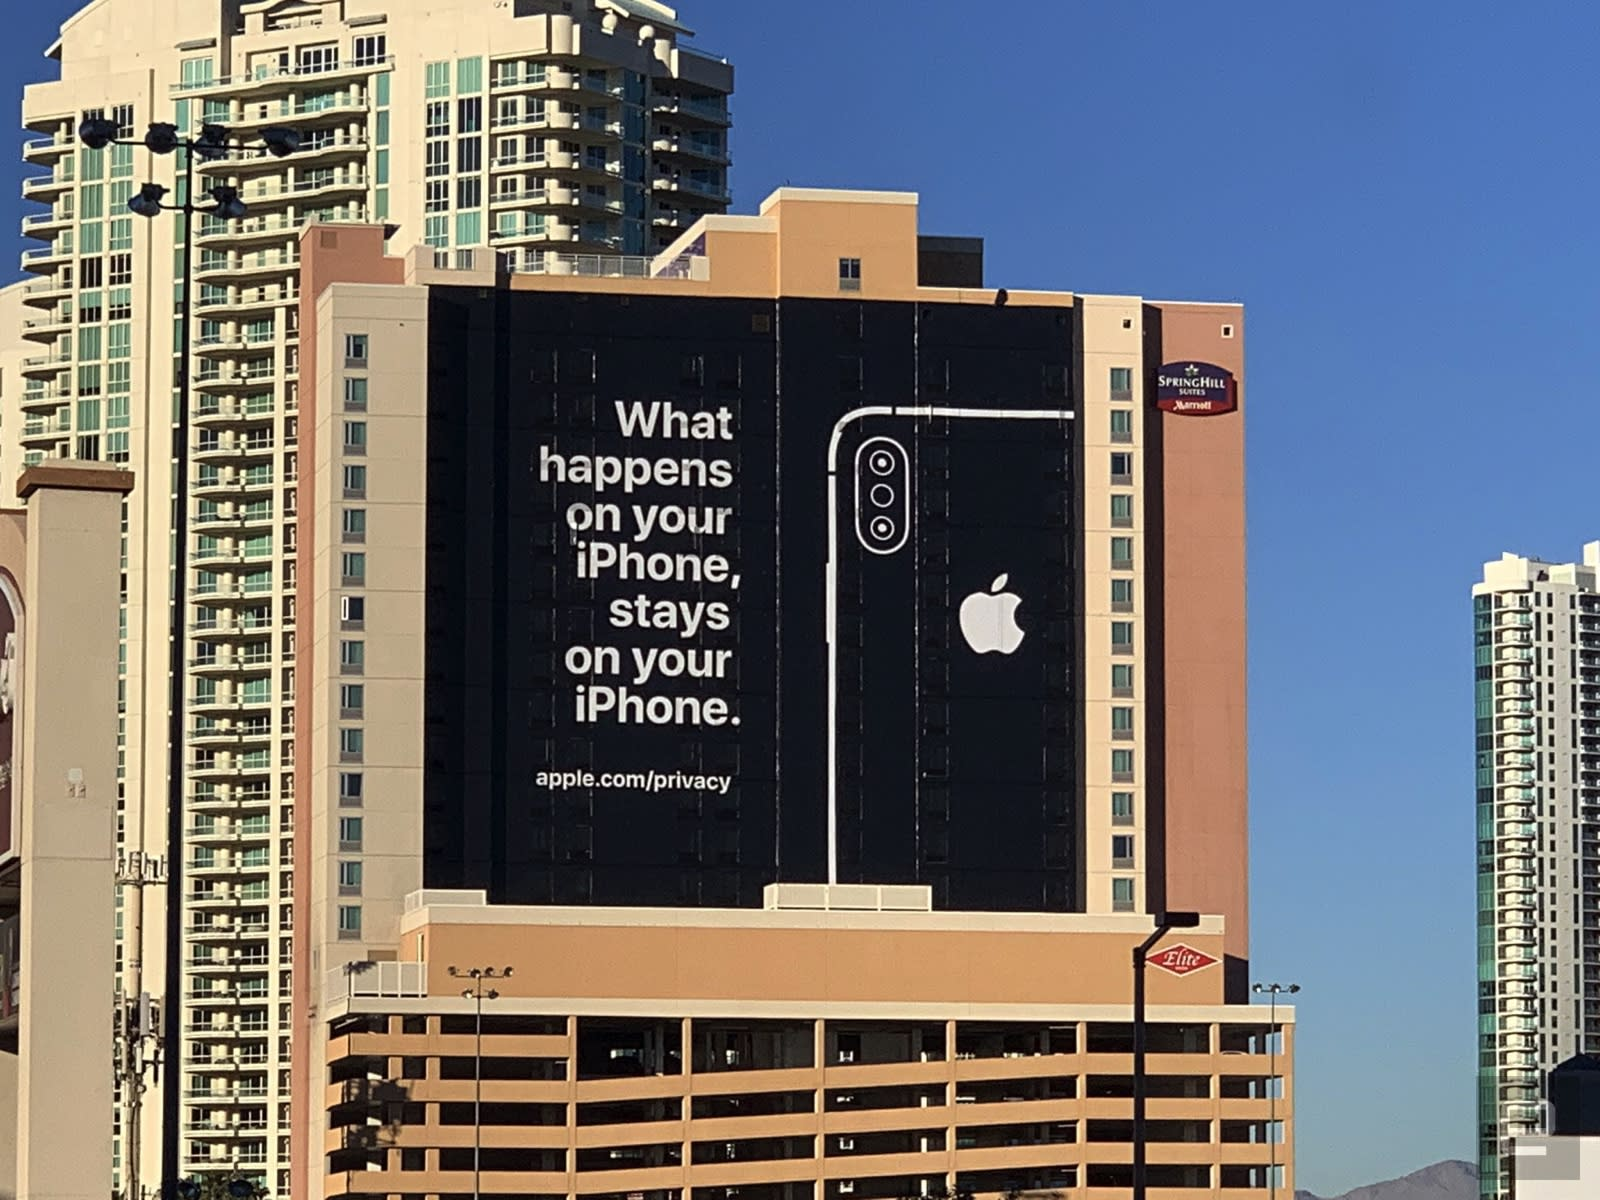 Apple took out a CES ad to troll its competitors over privacy | Engadget